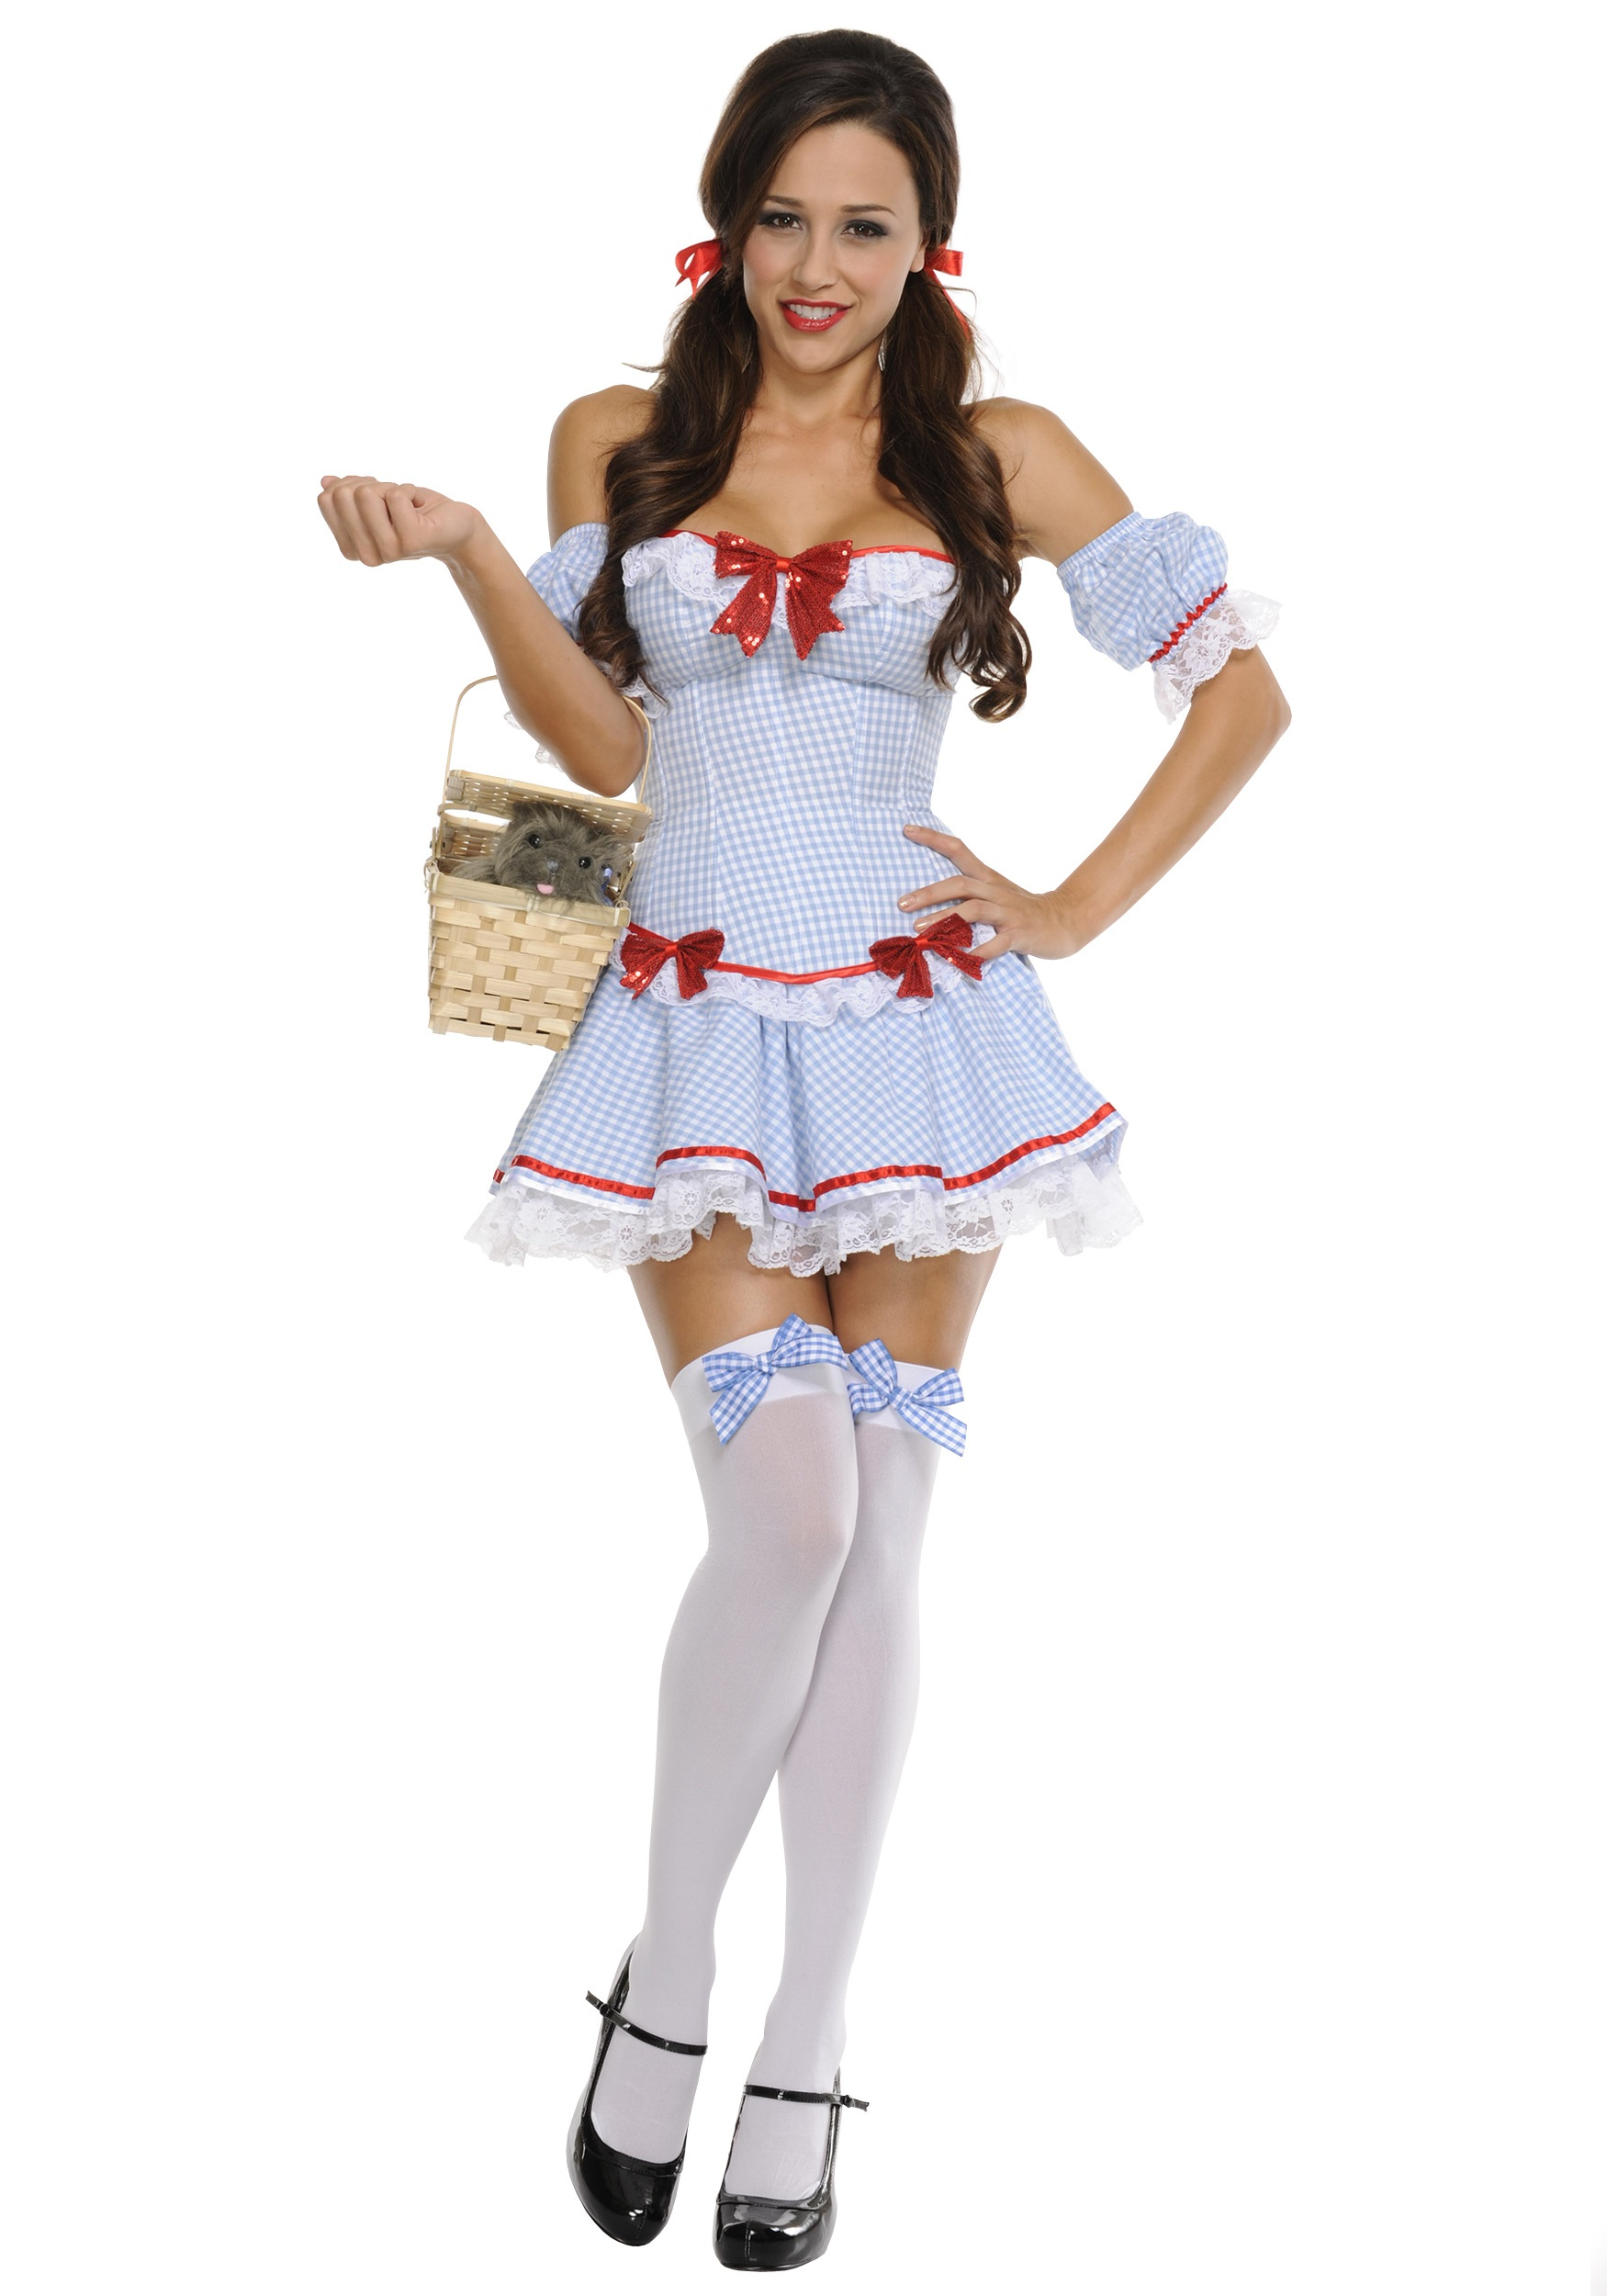 Sexy Trending Halloween Costumes For The Hottest Halloween Parties